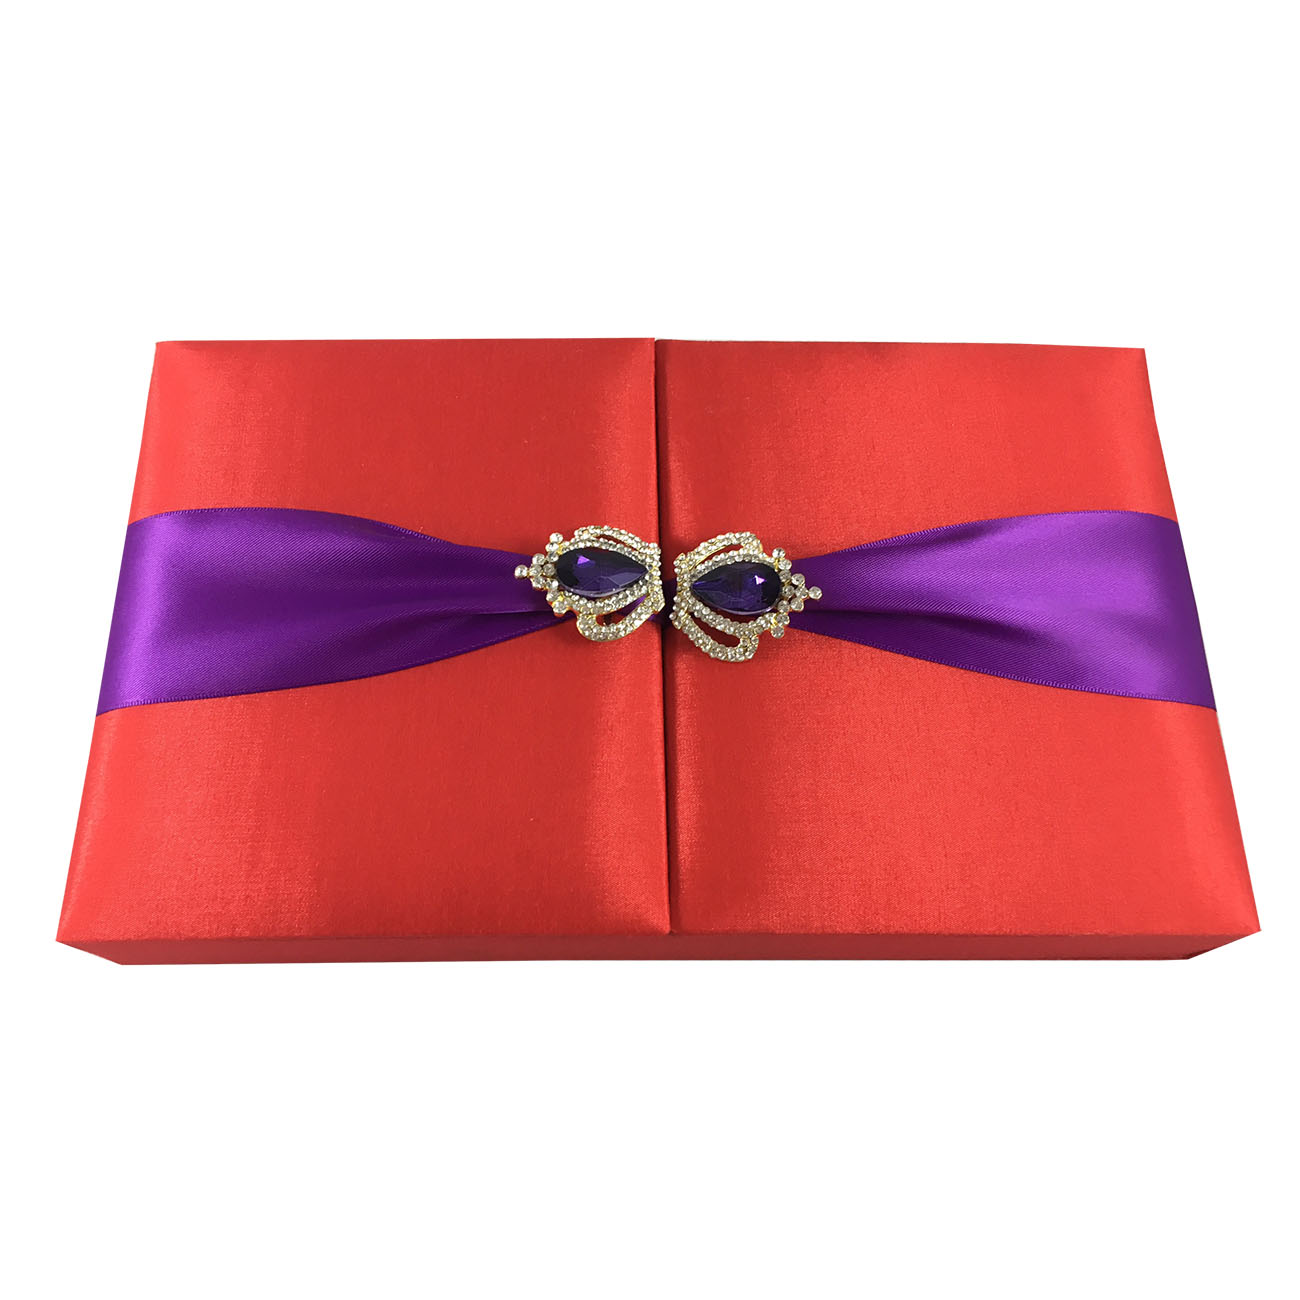 silk box for chocolate and wedding invitations